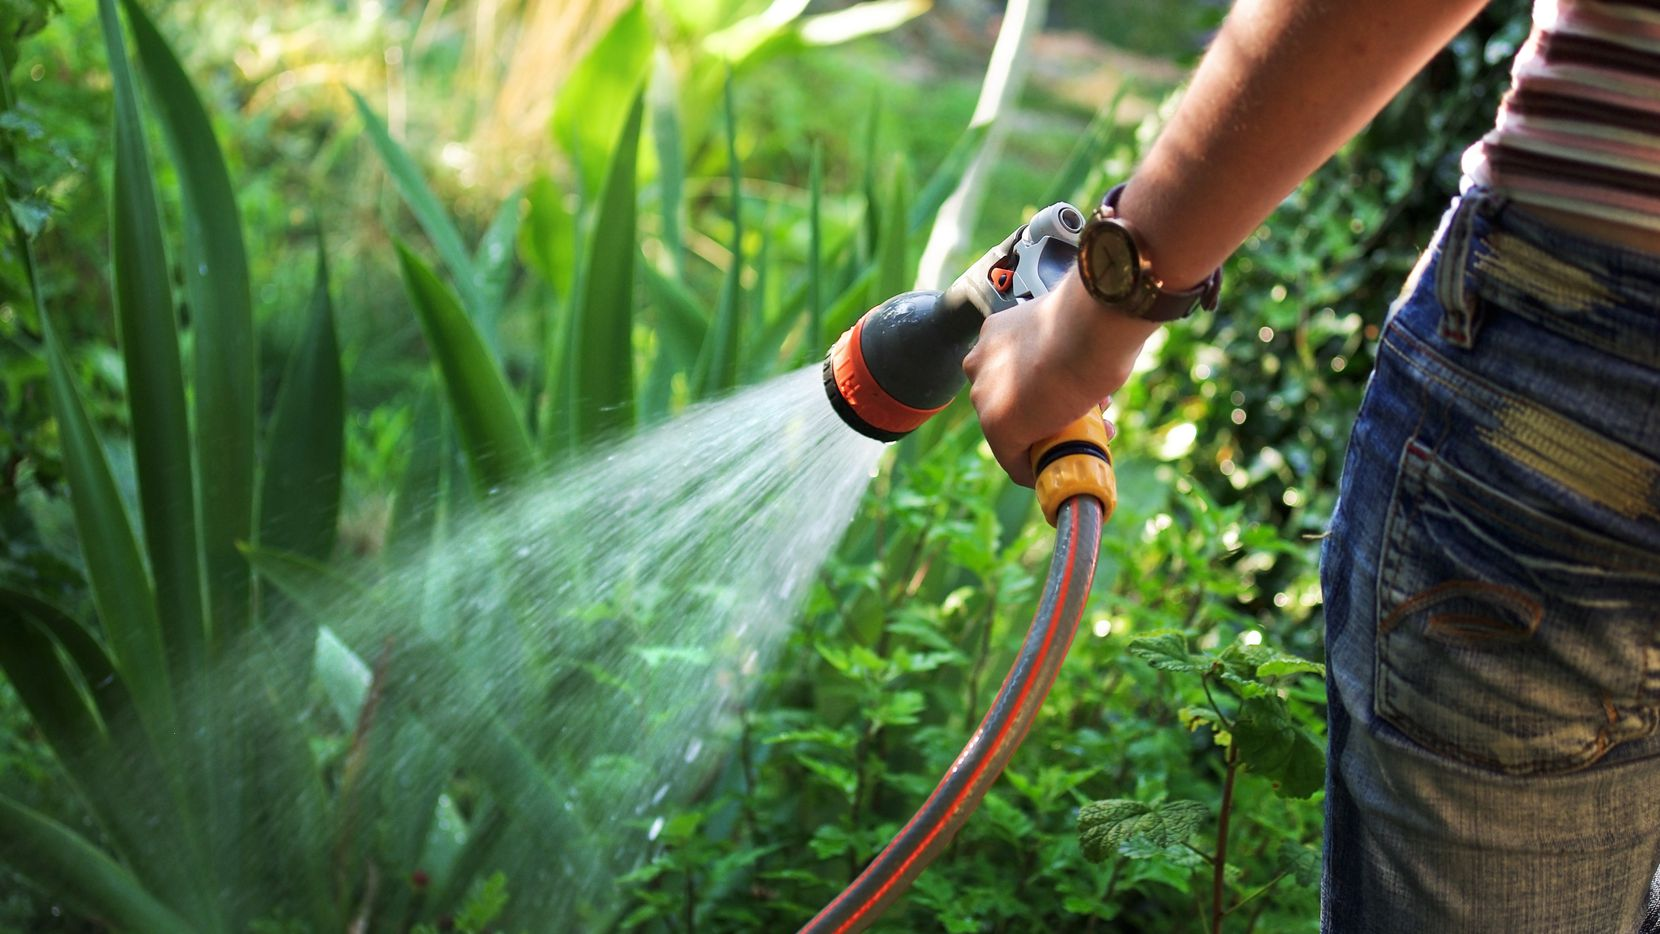 There's more to watering your plants than just turning on the hose